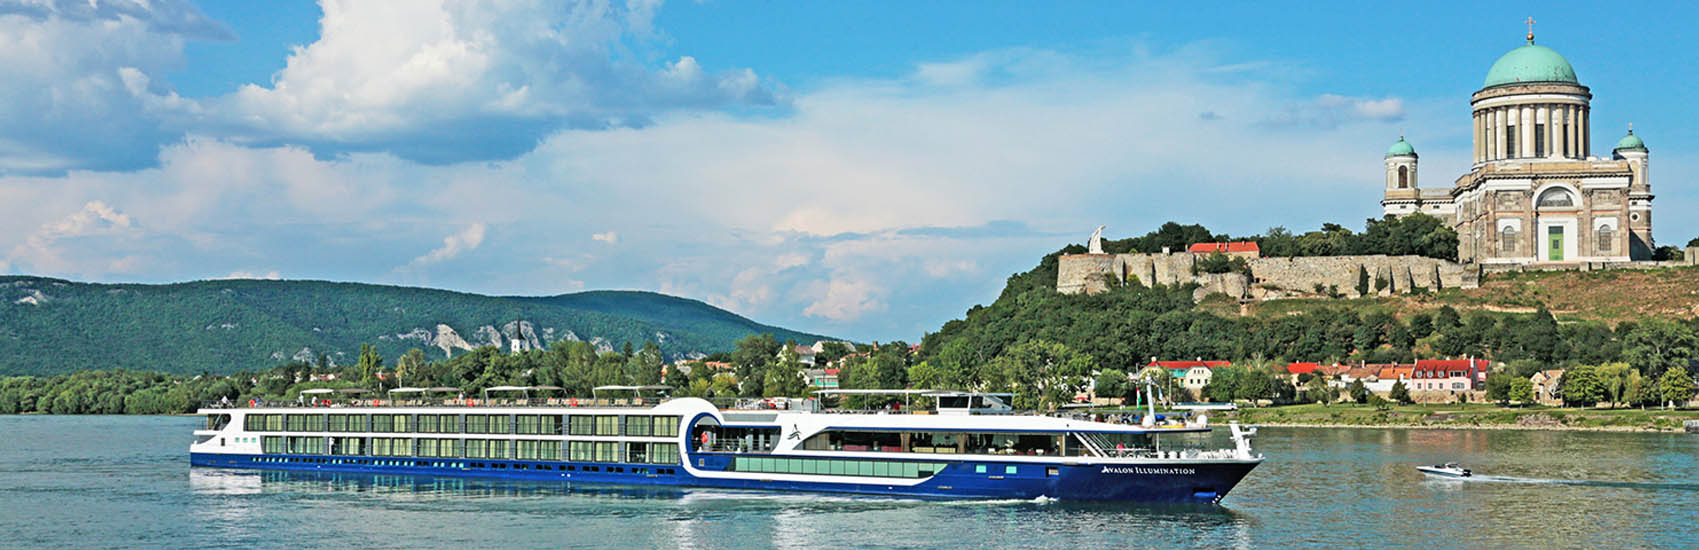 Discover Europe with Free Airfare on Avalon Waterways 2